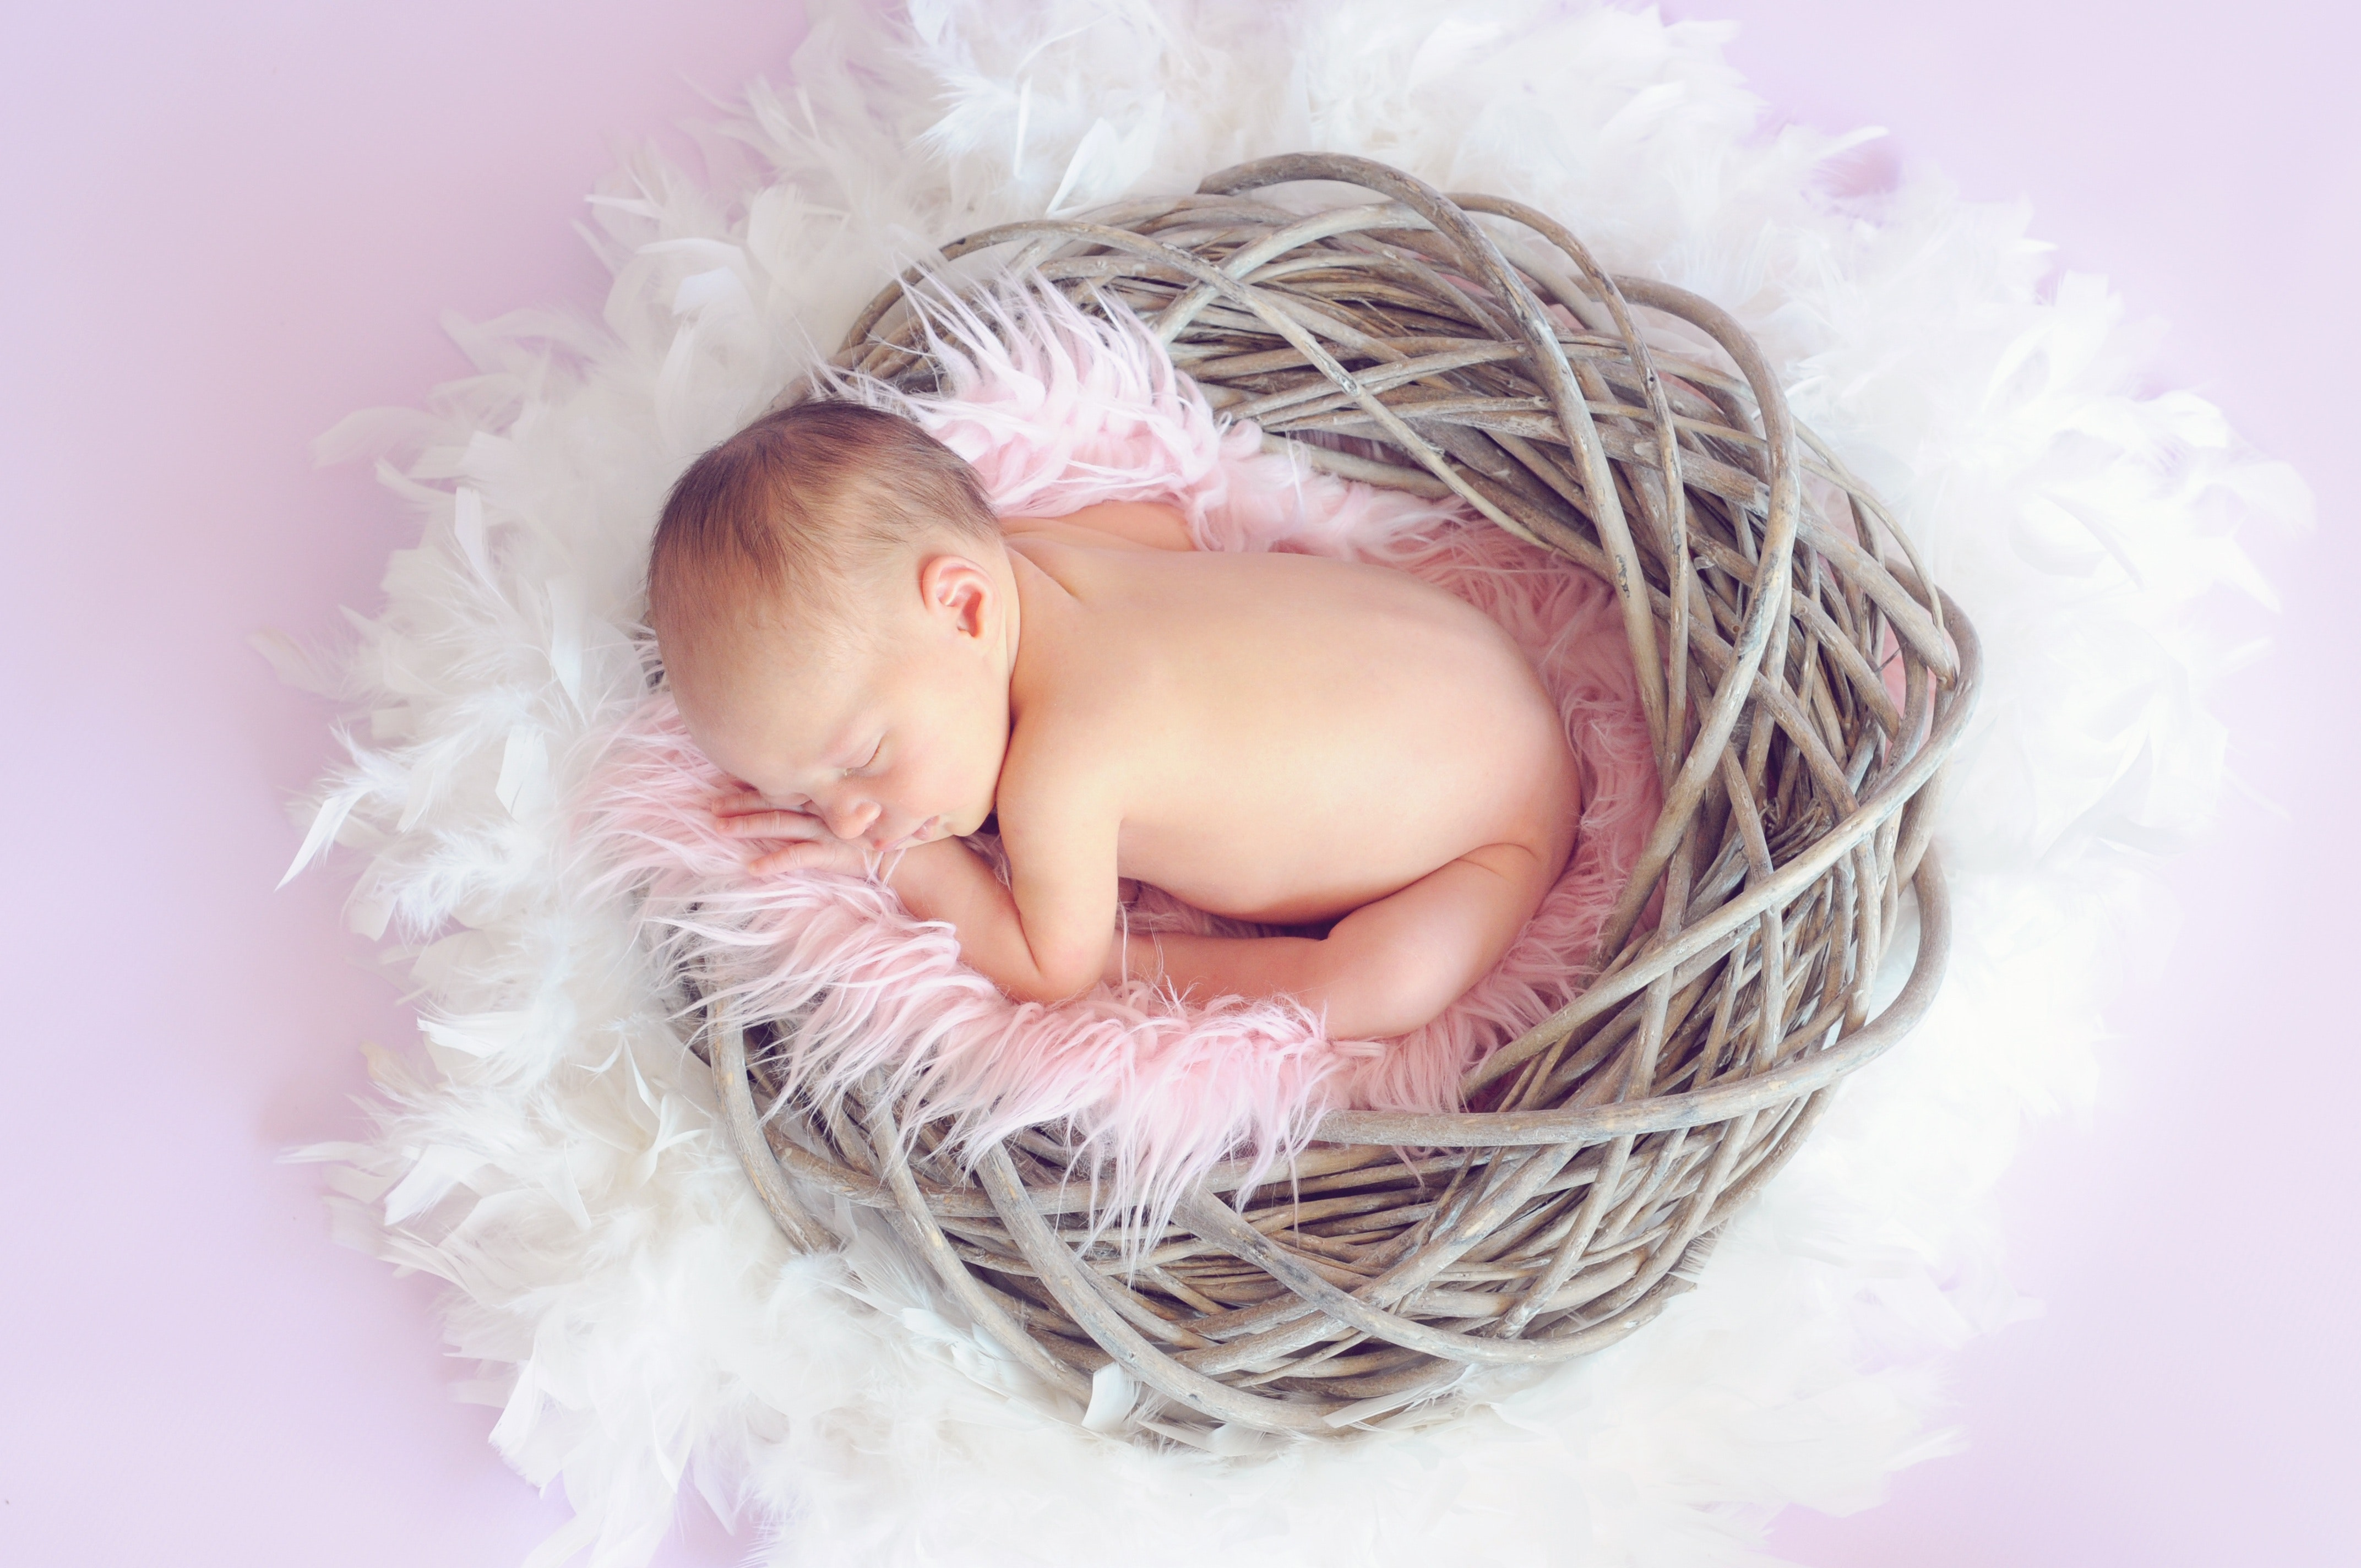 baby-sleeping-in-a-basket-and-a-round-feather-surrounding-34763